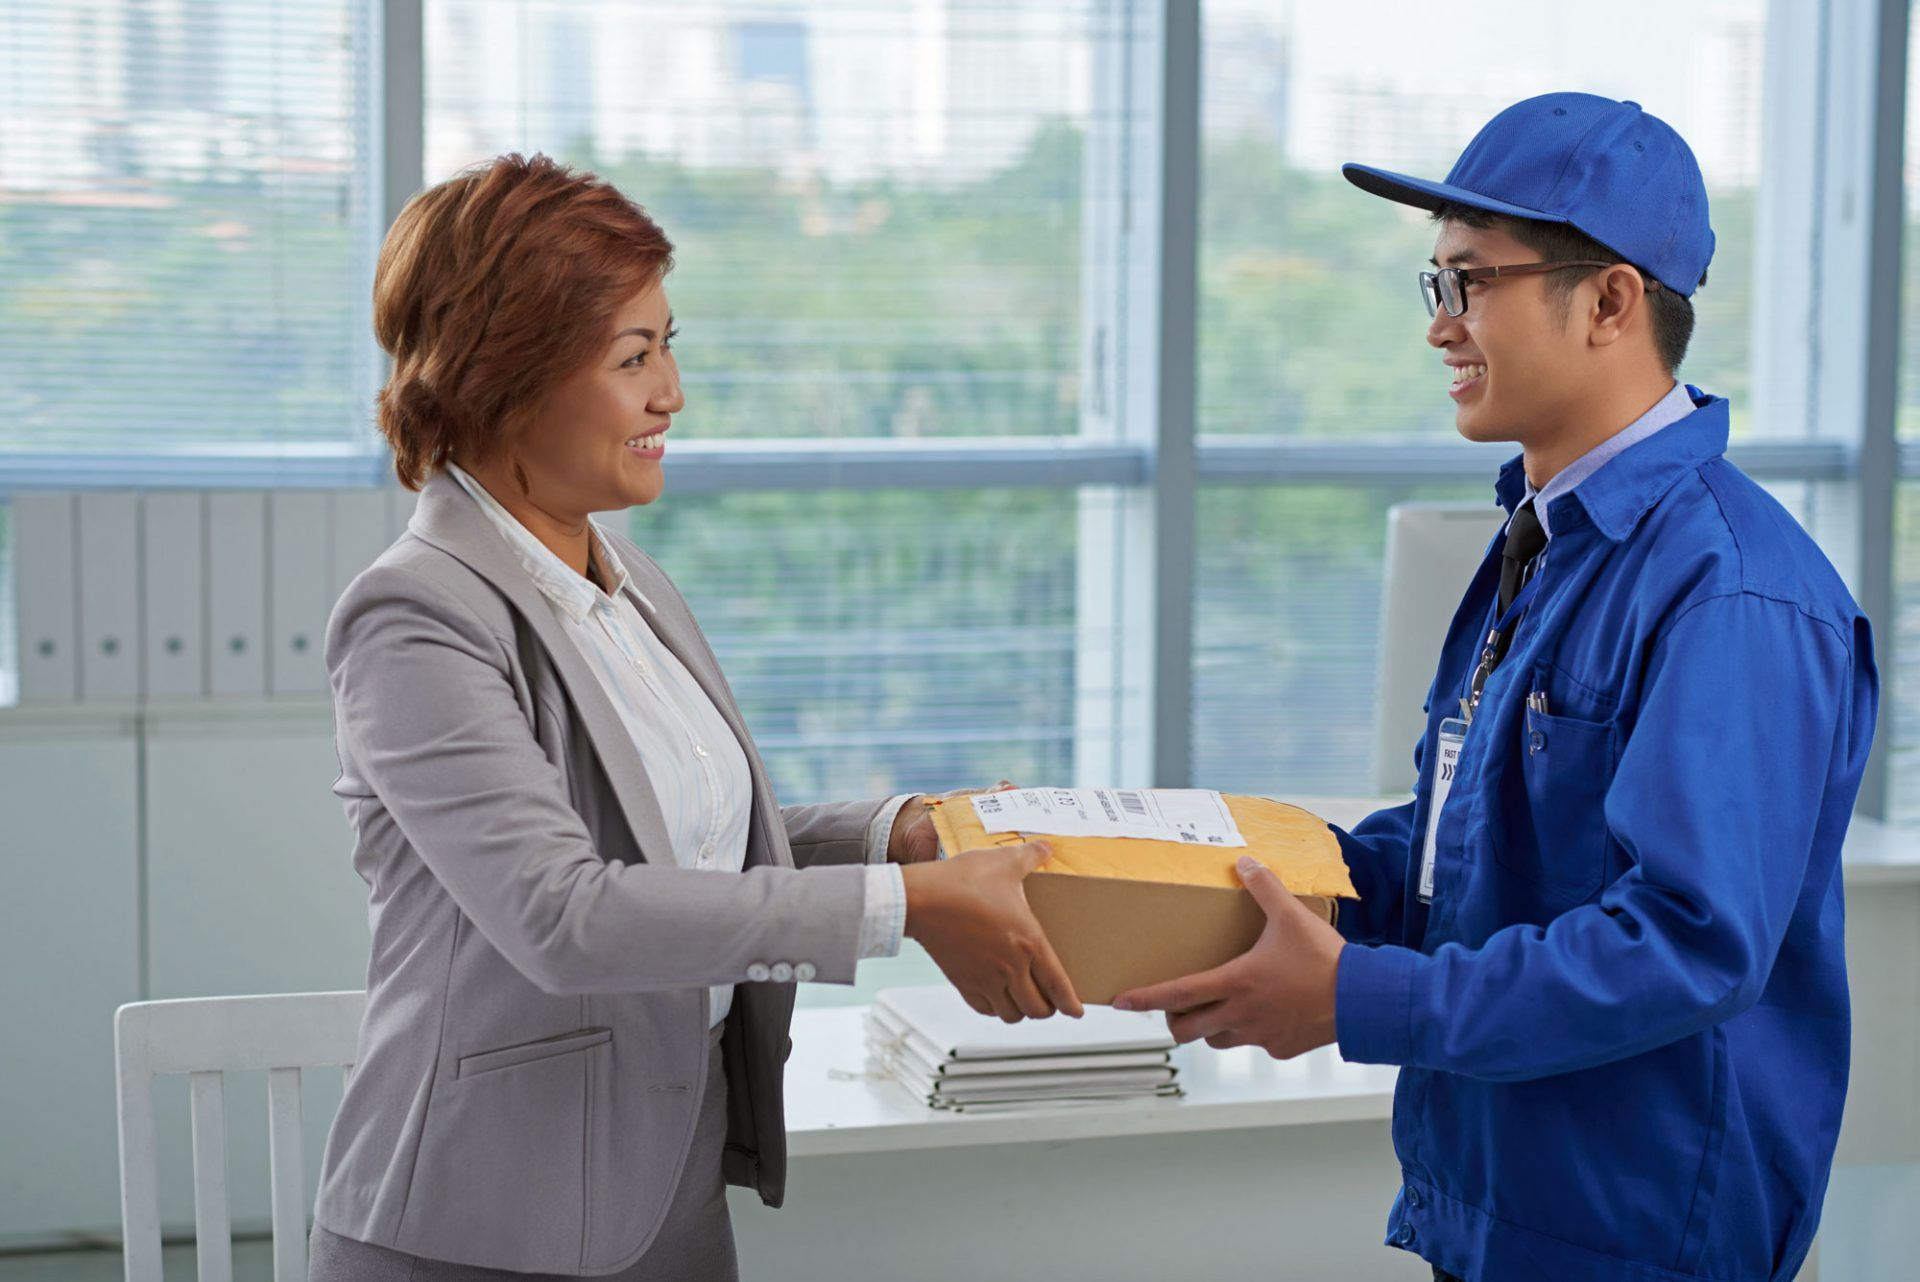 Cheap selfemployed couriers insurance you can trust